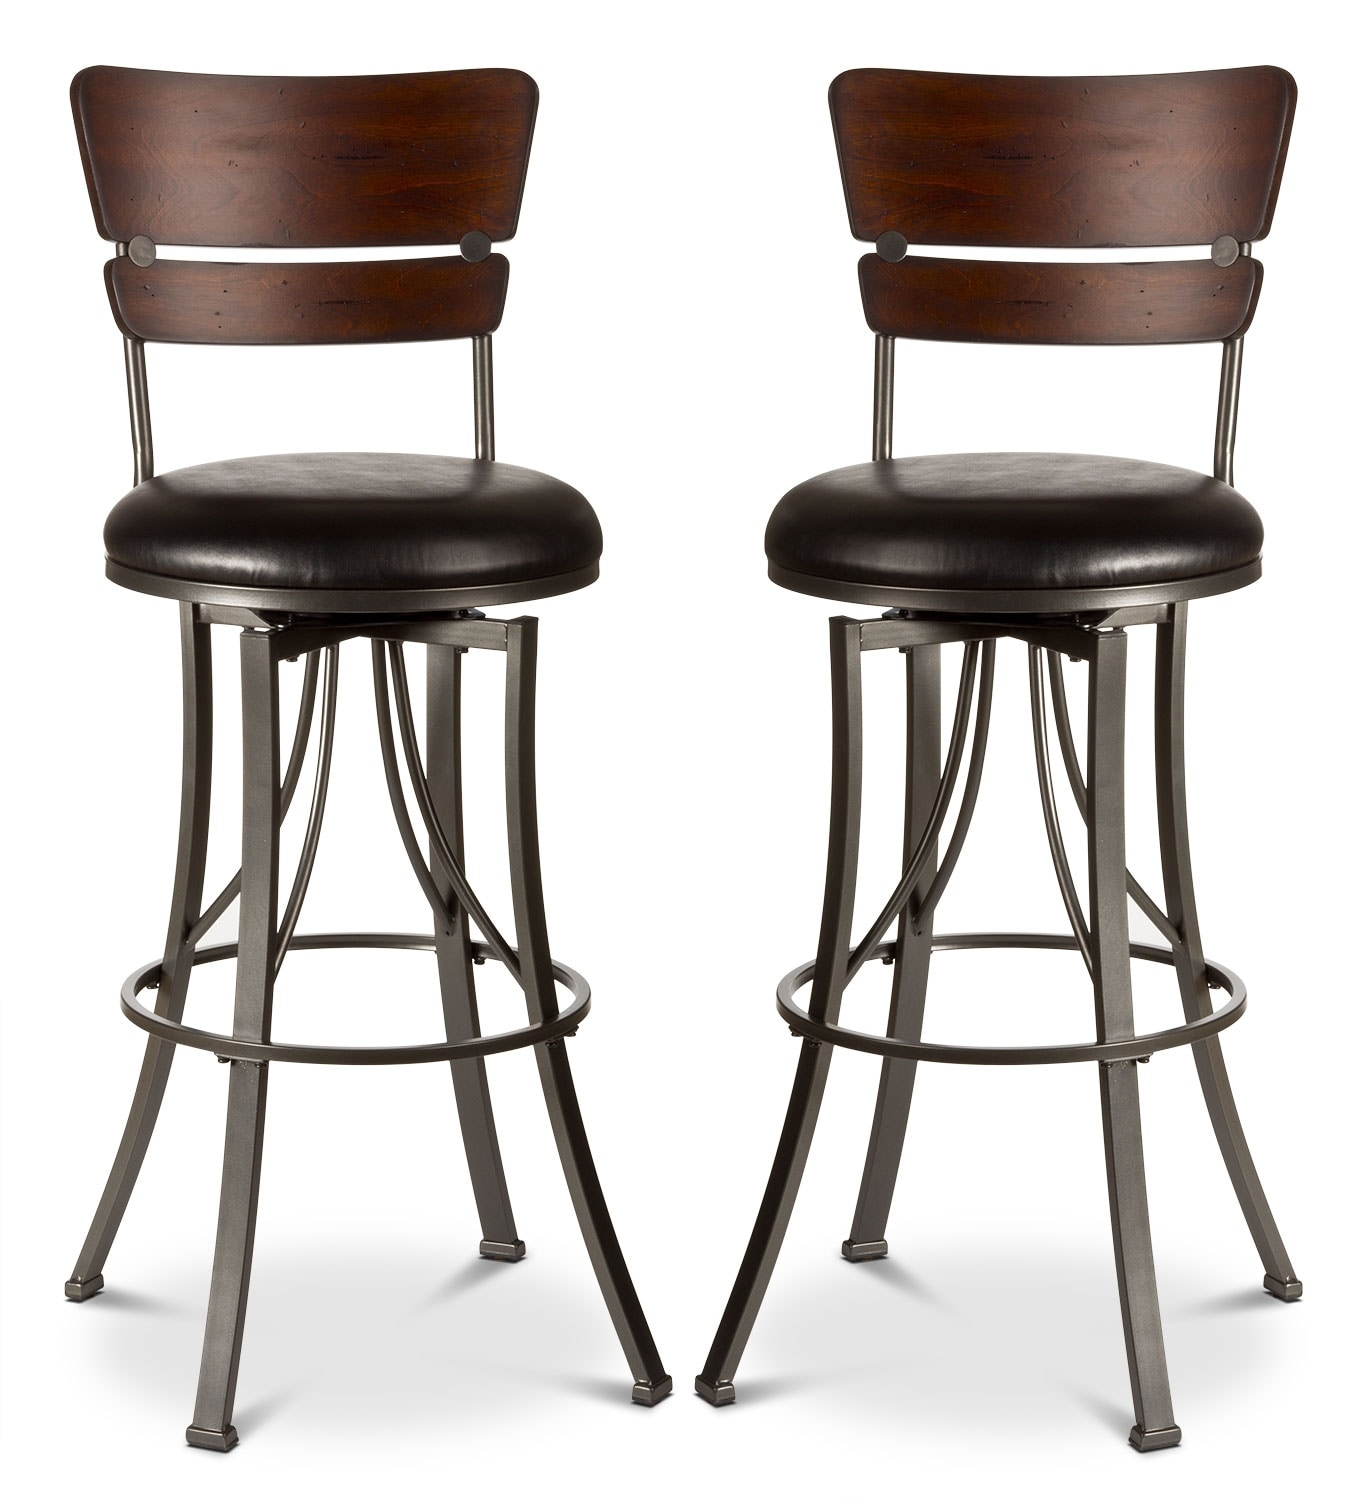 Dining Room Furniture - Santa Monica Swivel Barstool – Set of 2